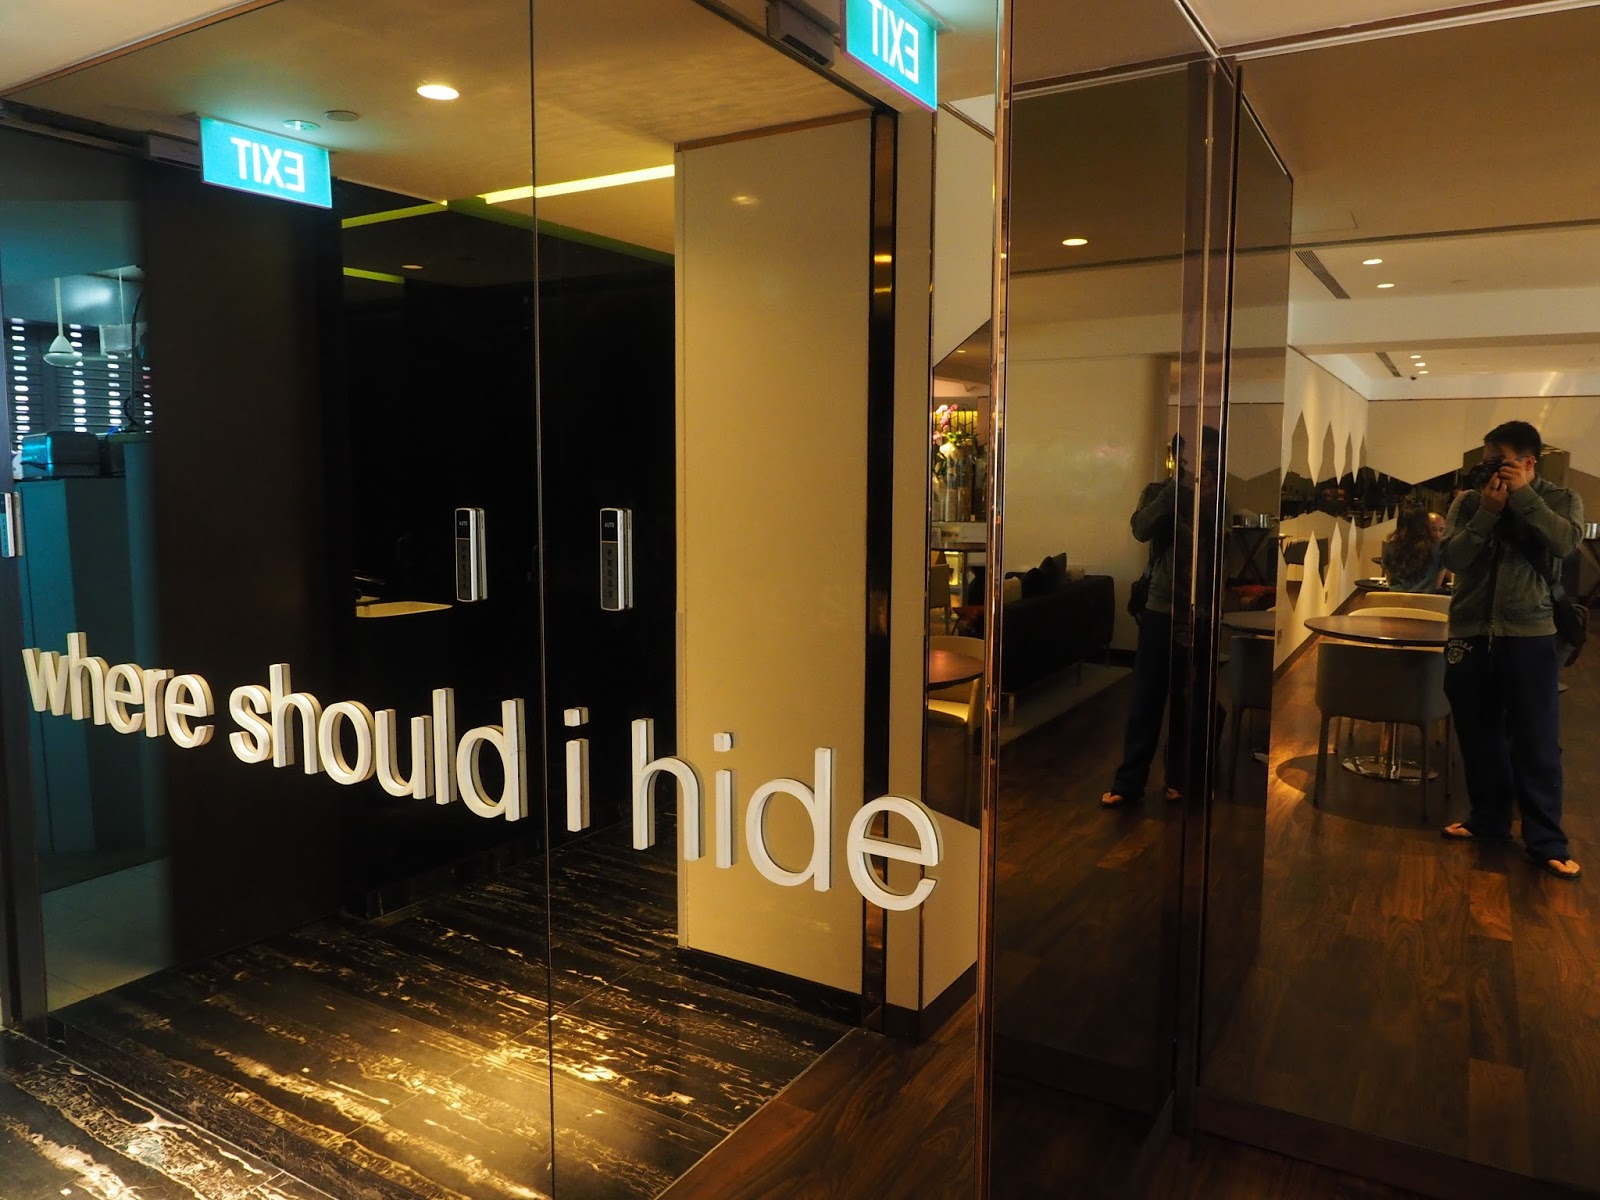 naumi hotel boutique singapore where should i hide sign funny